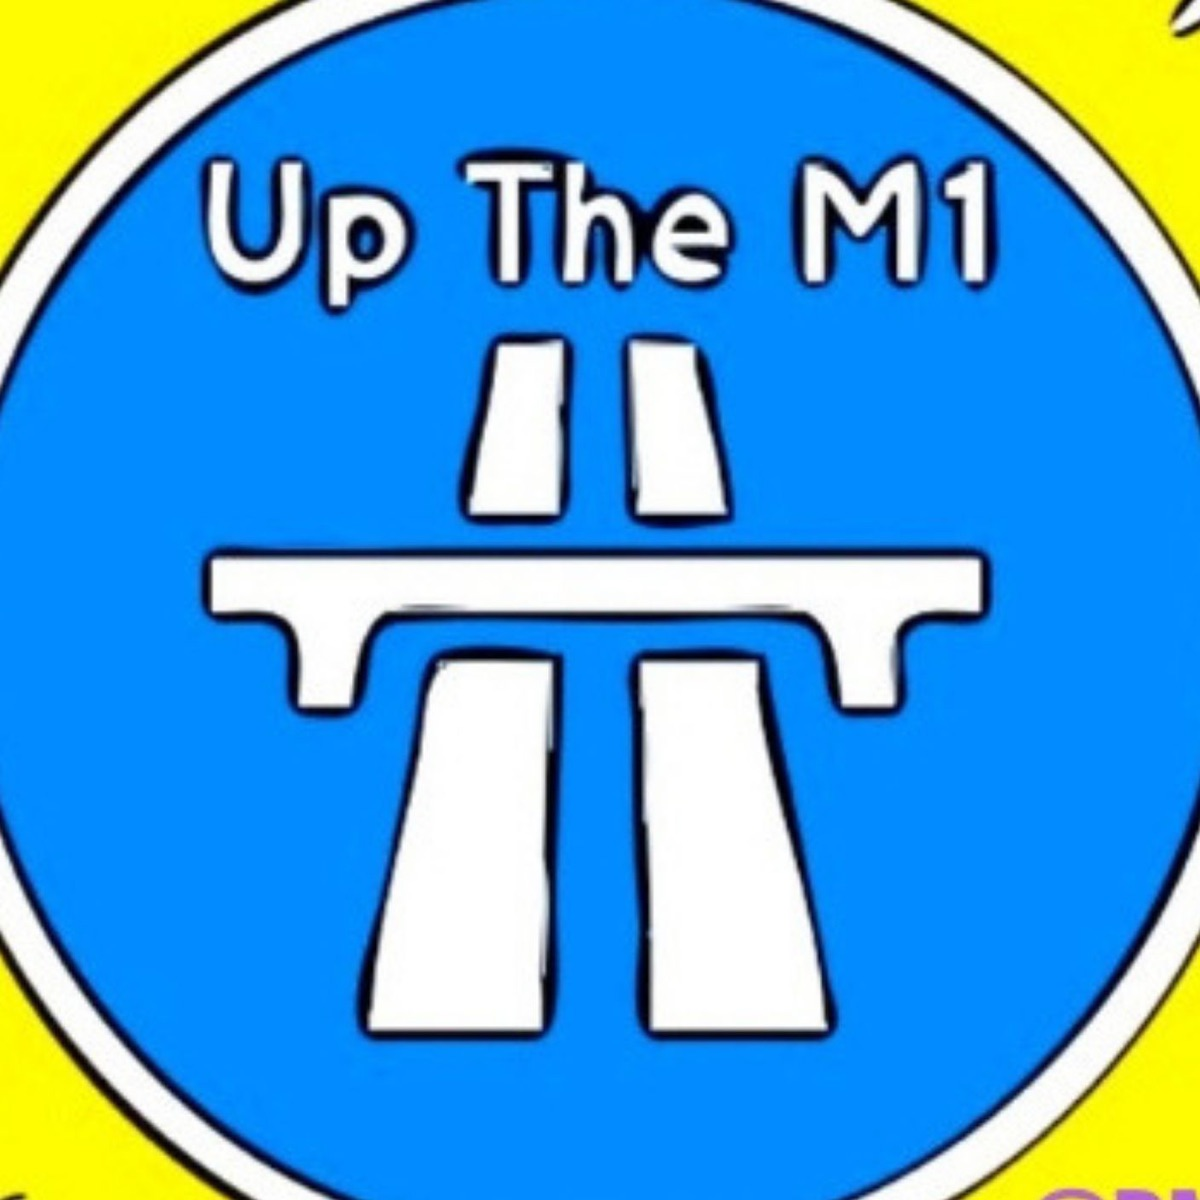 Up The M1 Podcast Podcast Podtail